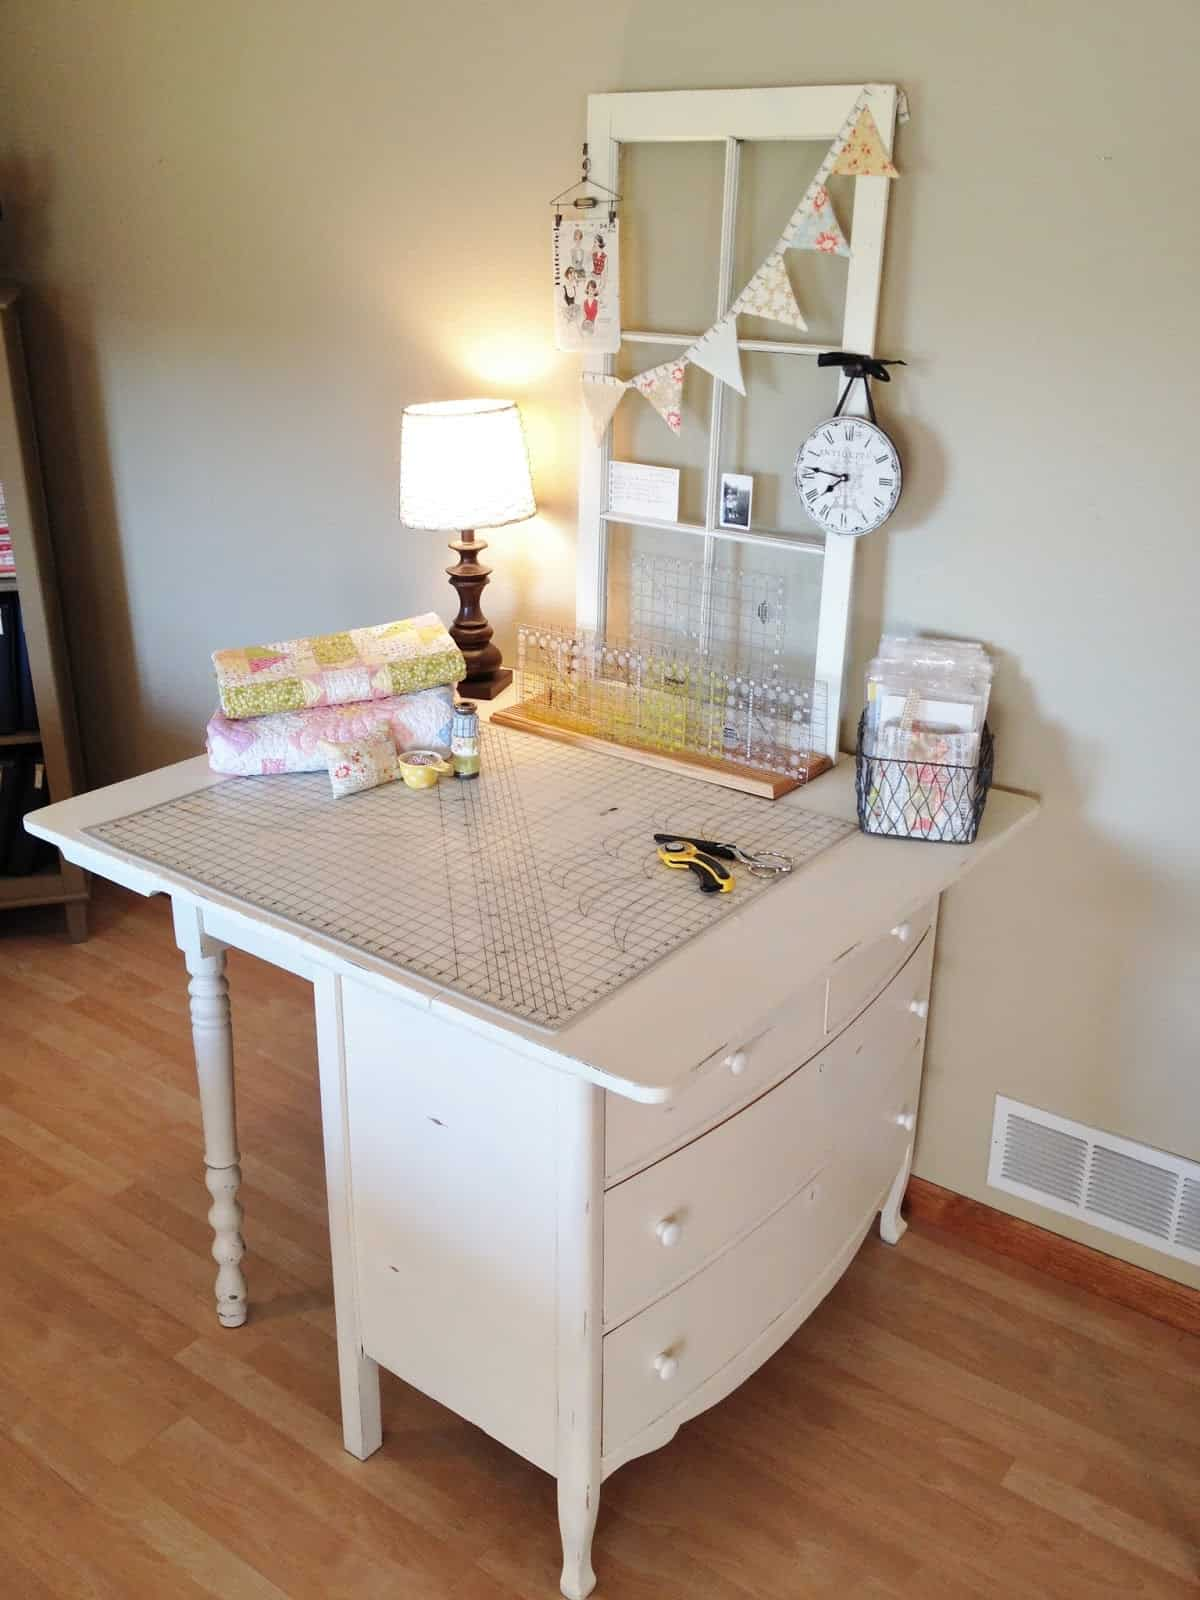 20 Inspiring DIY Sewing Table Ideas in 2021